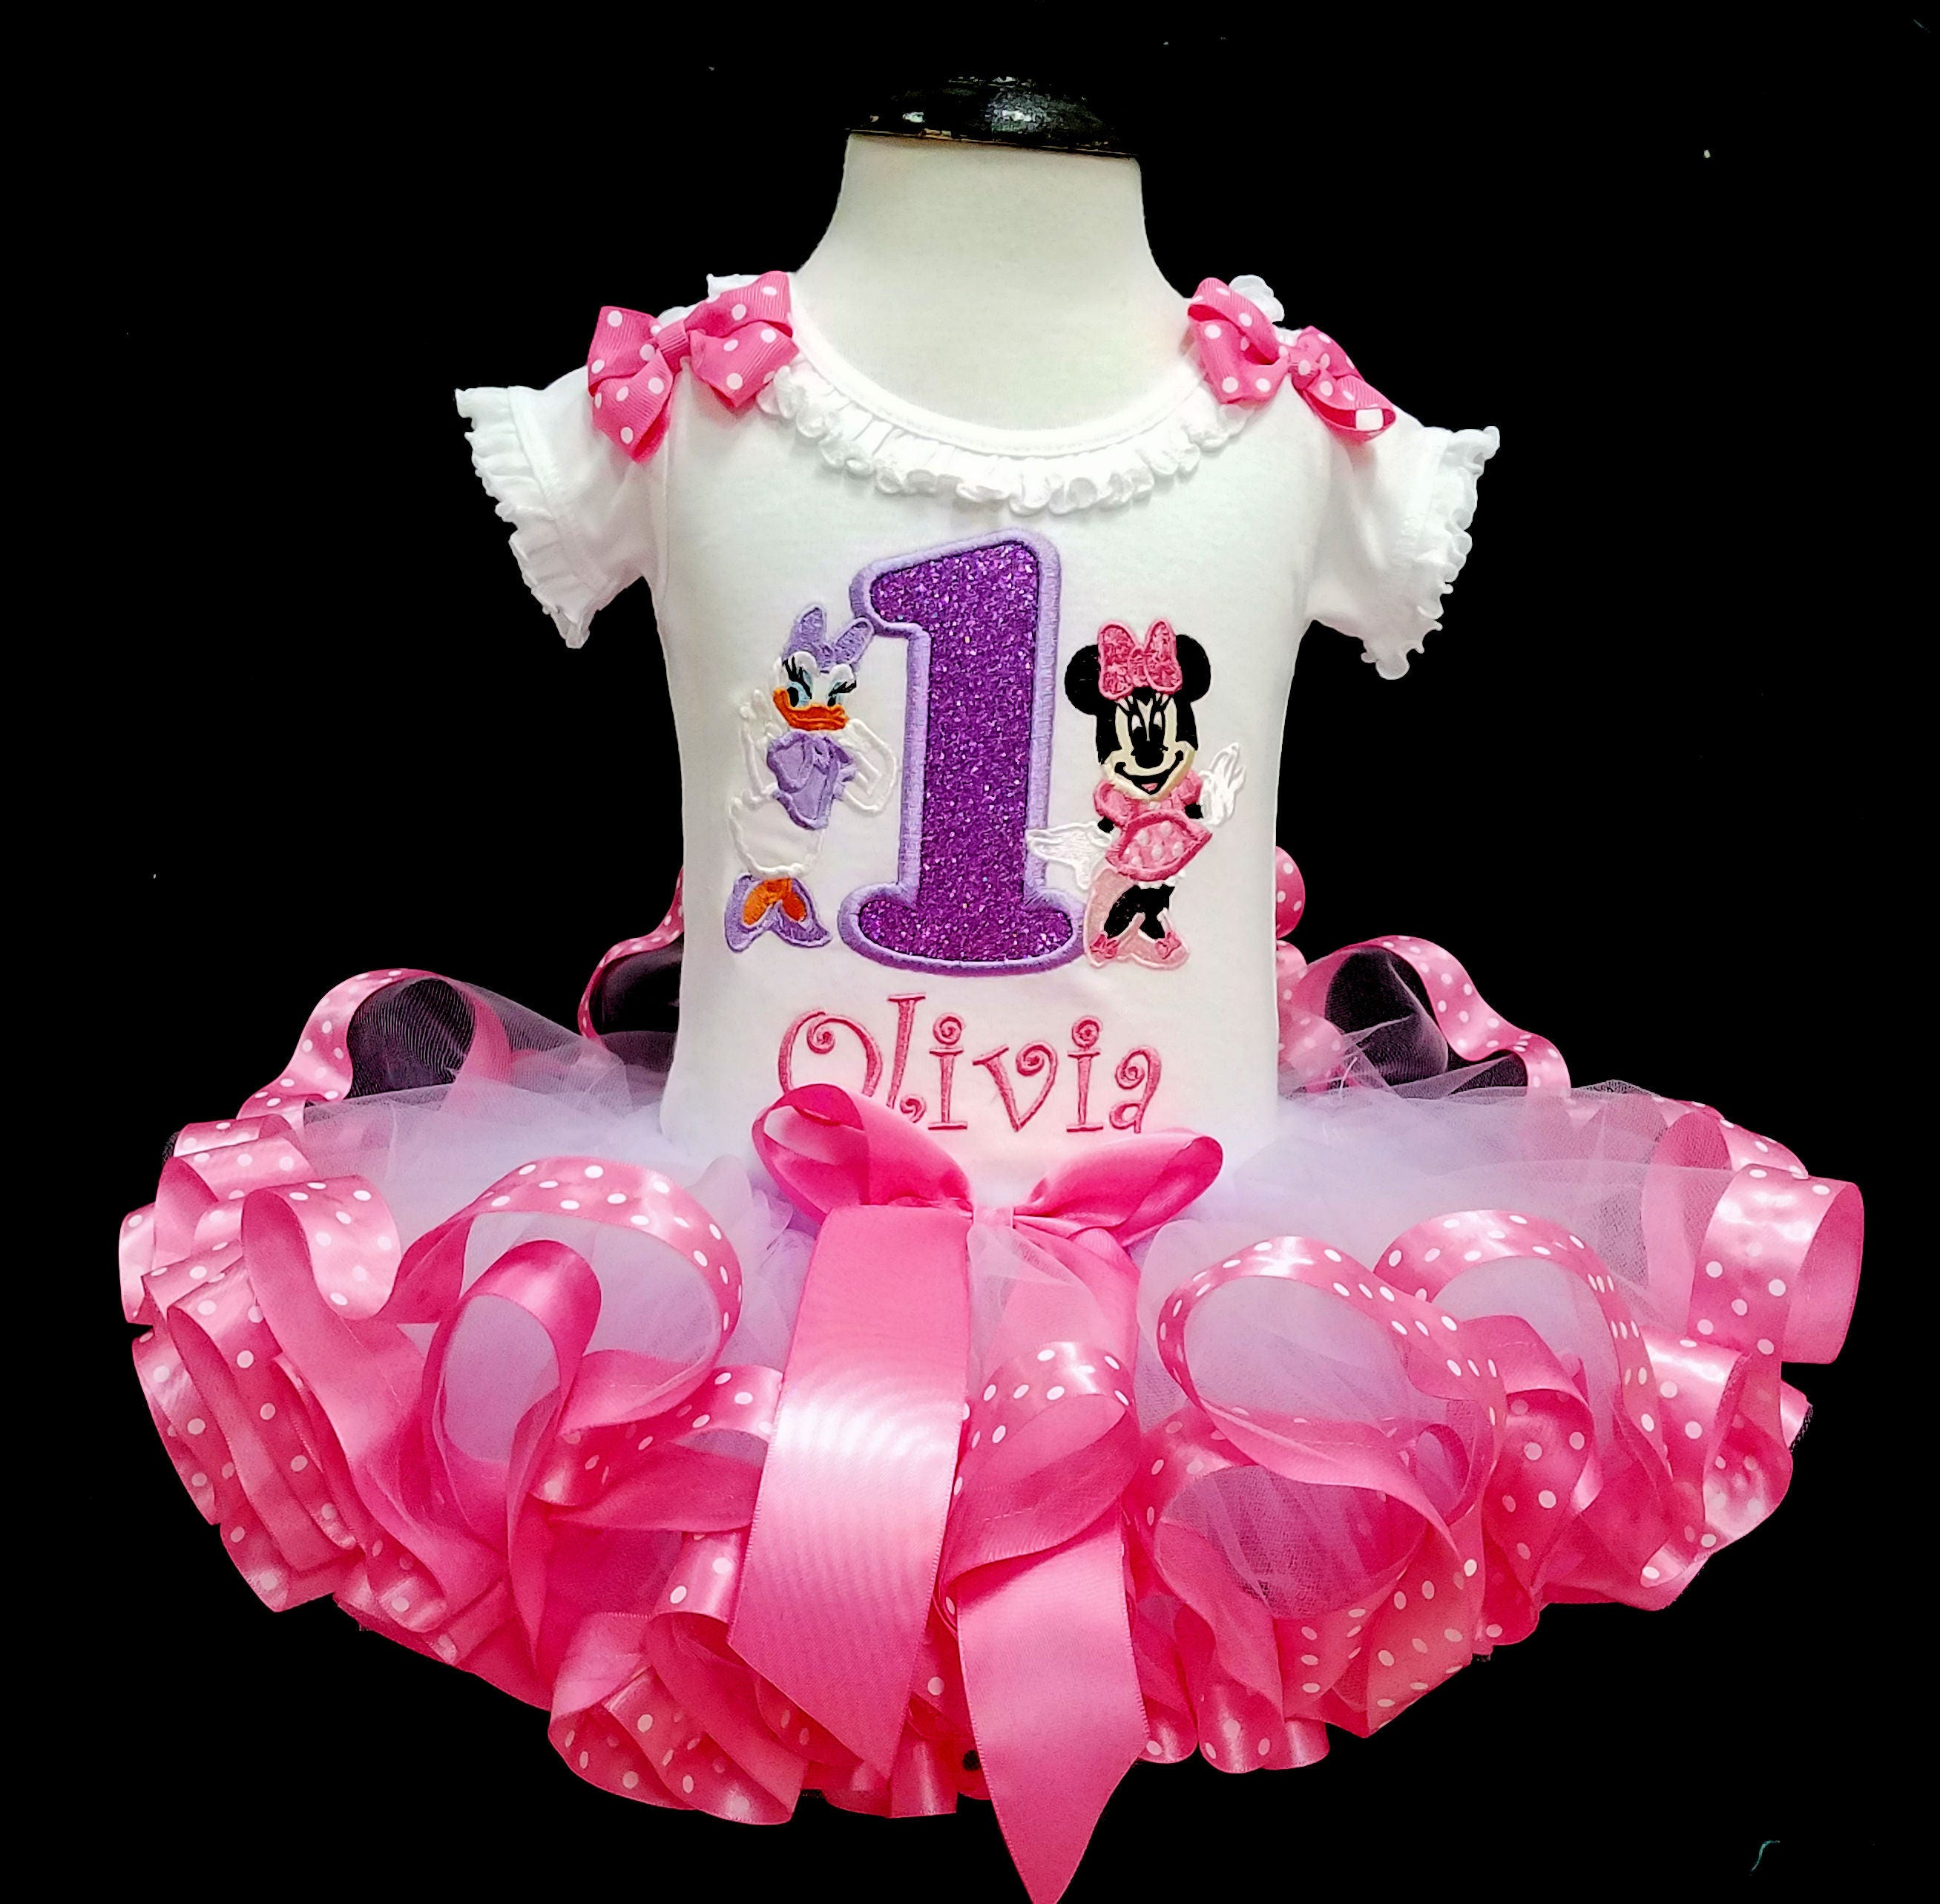 minnie mouse birthday outfit 1st birthday tutu outfit minnie mouse 1st birthday outfit daisy duck minnie & unicorn birthday outfit 1st birthday unicorn birthday tutu outfit ...